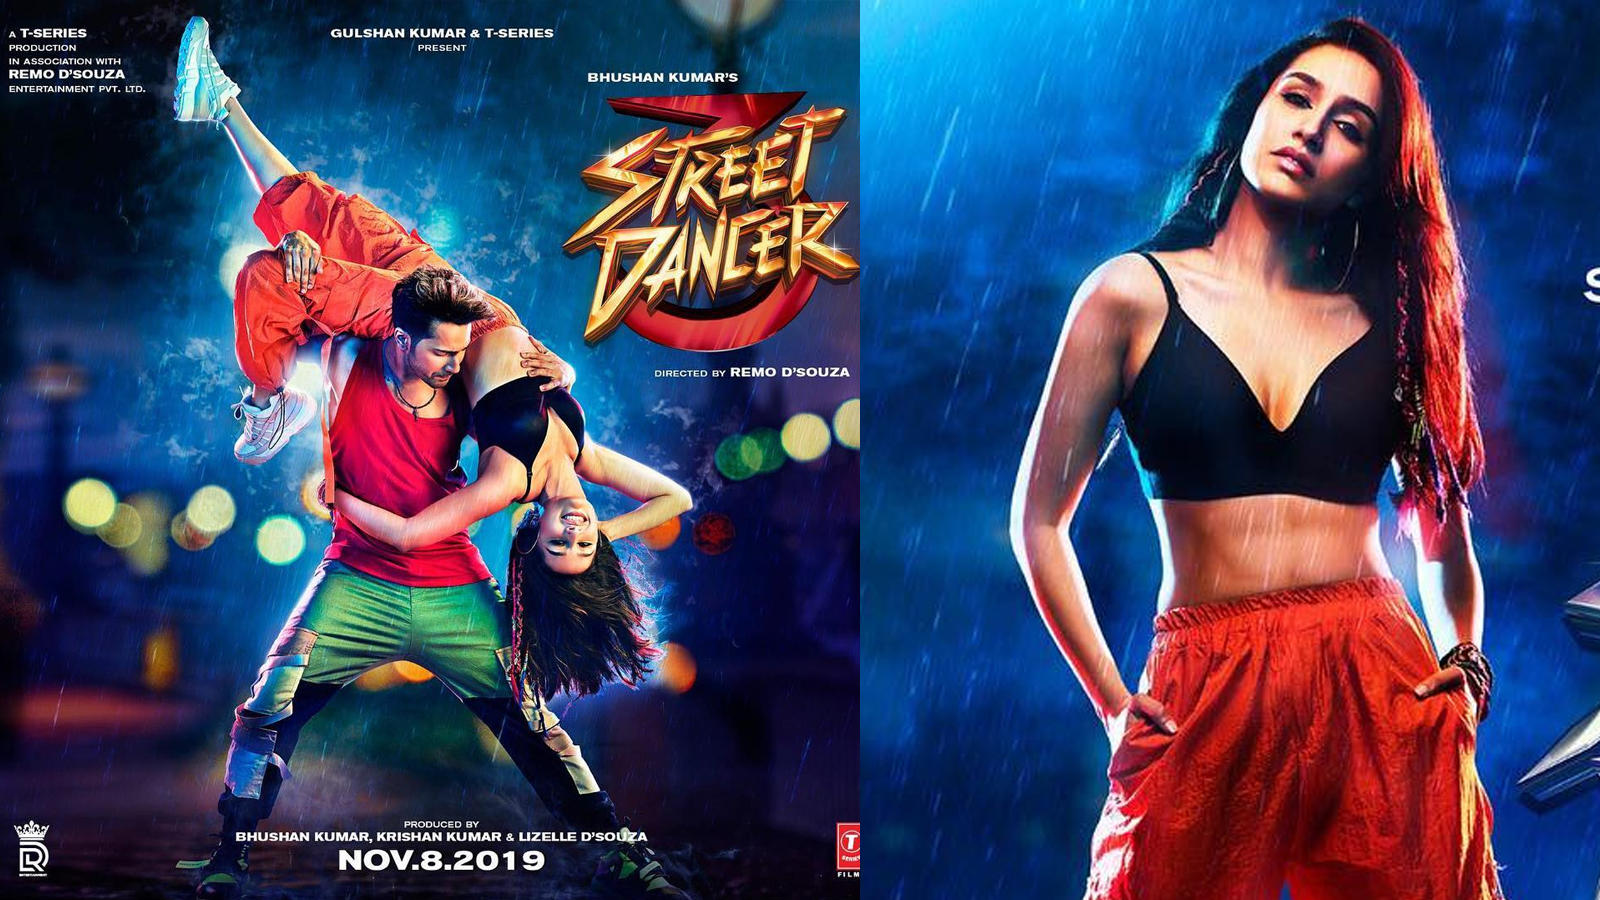 Shraddha Kapoor wants to focus entirely on 'Street Dancer 3D'